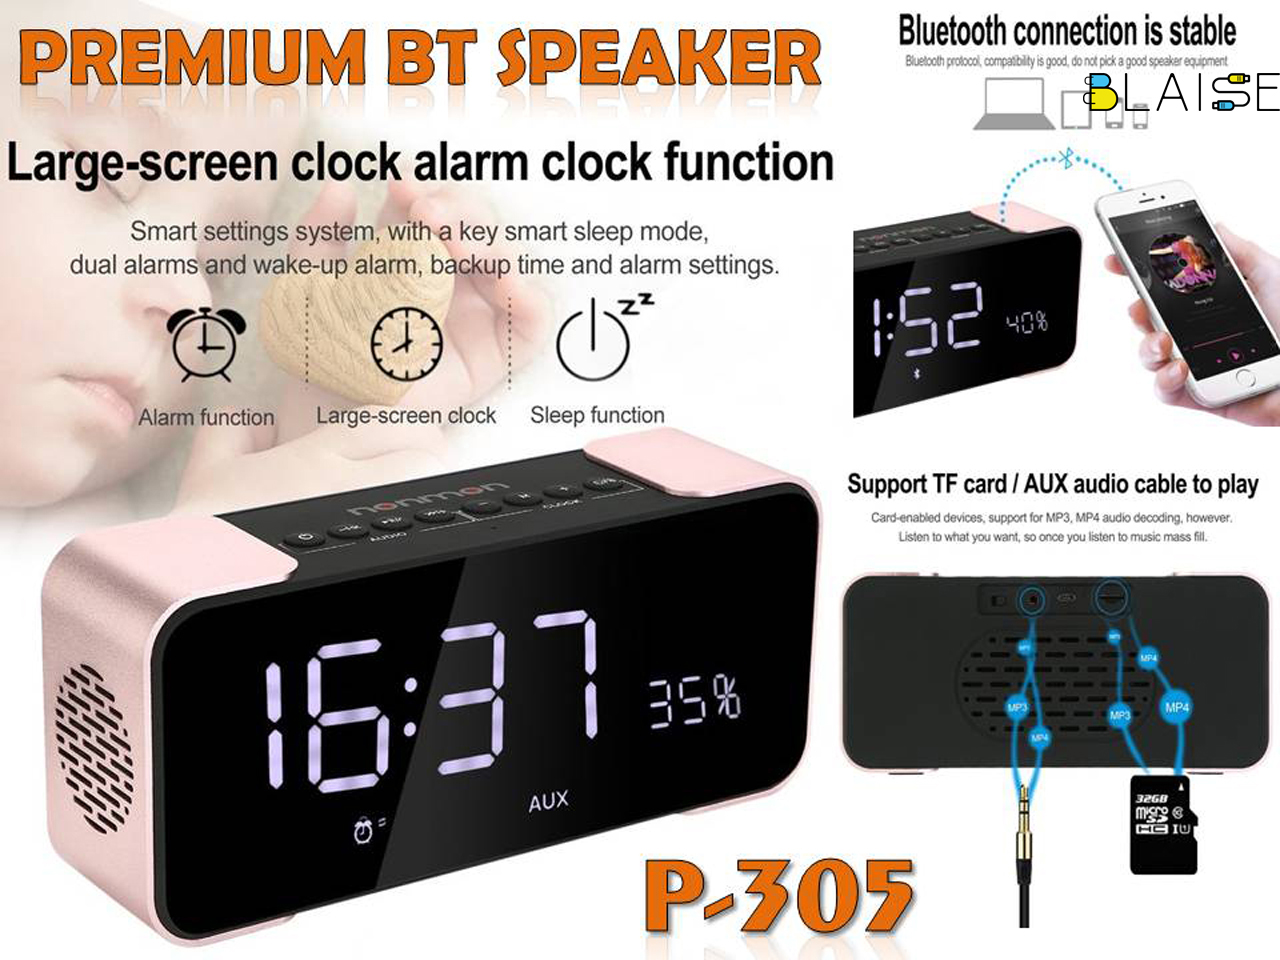 PTH-305 speaker with clock